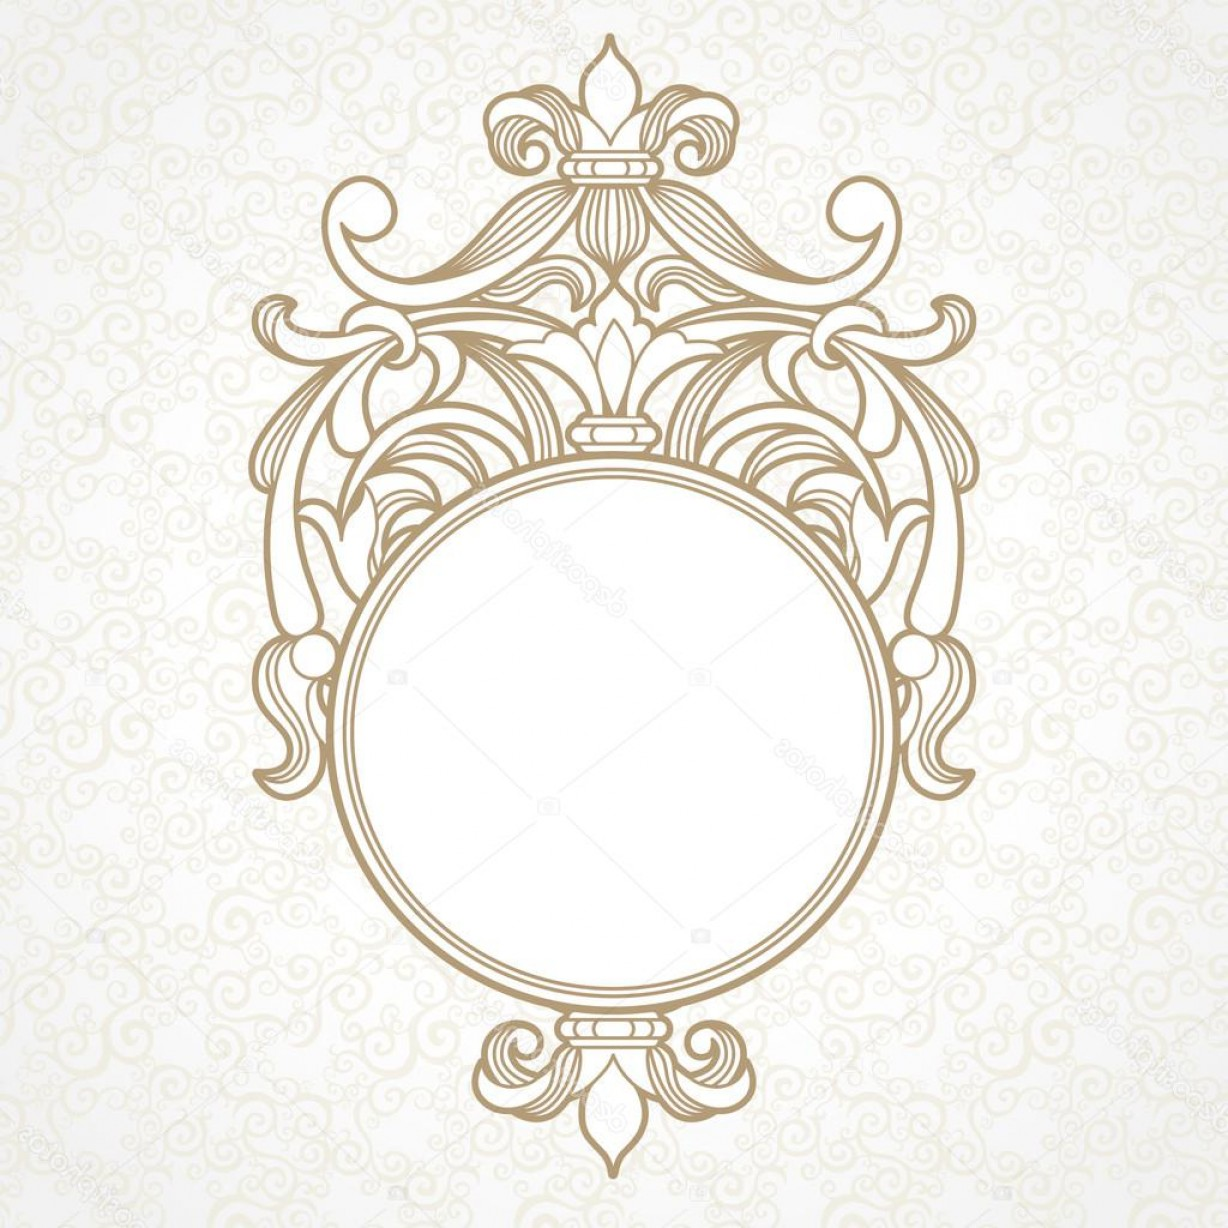 Filigree Oval Frame Vector: Stock Illustration Filigree Vector Frame In Victorian